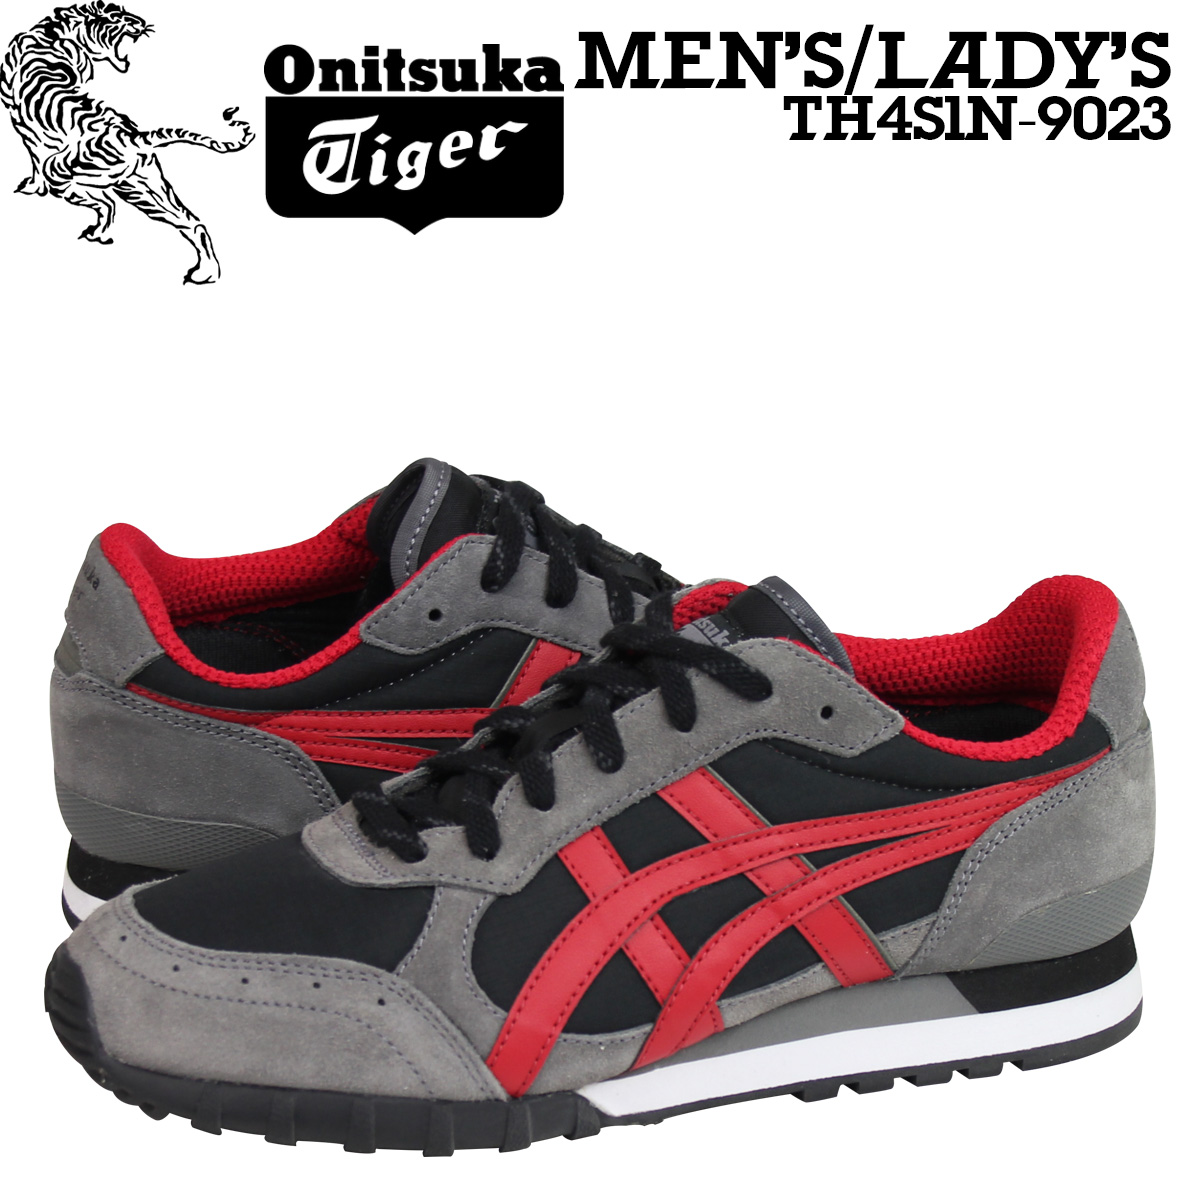 asics and onitsuka